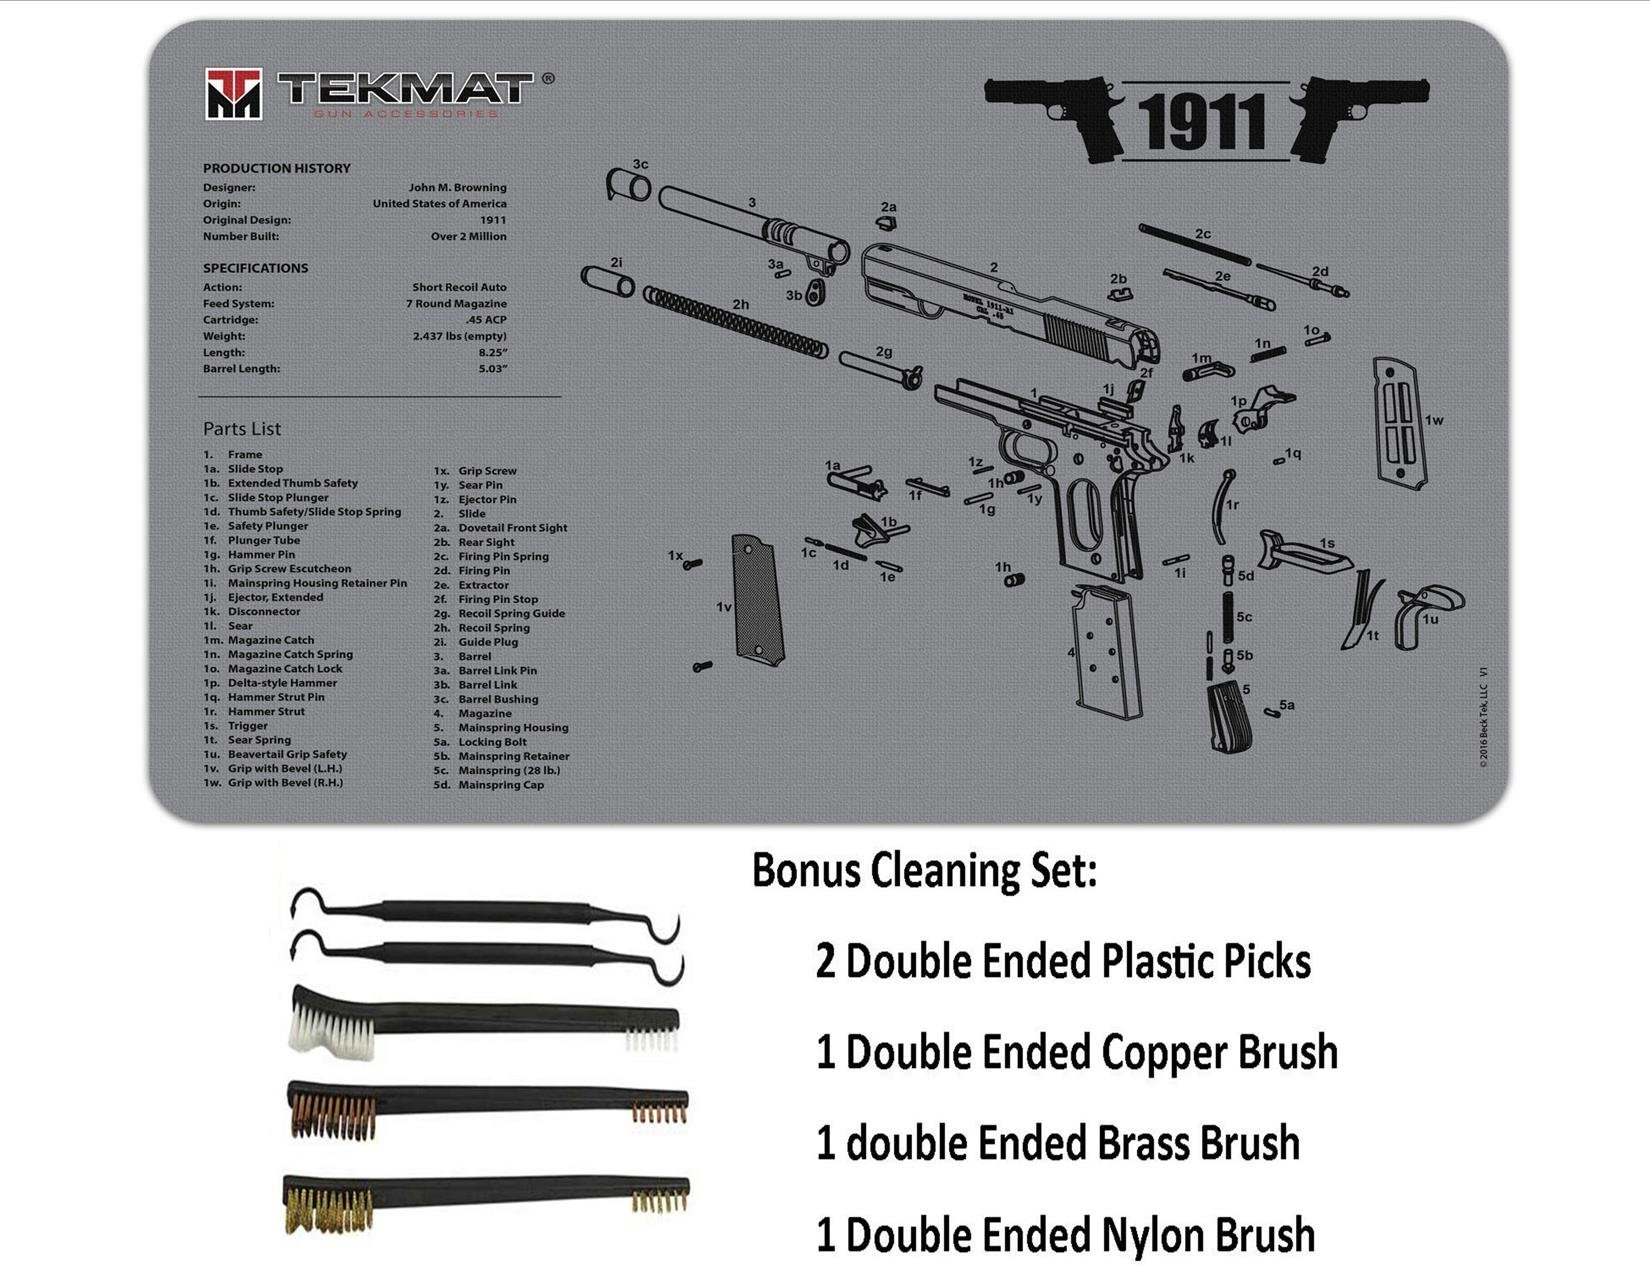 TekMat 11-Inch X 17-Inch Handgun Cleaning Mat Universal 1911 Bonus 5 oc Gun Cleaning Brush & Pick Set by EDOG (Image #3)